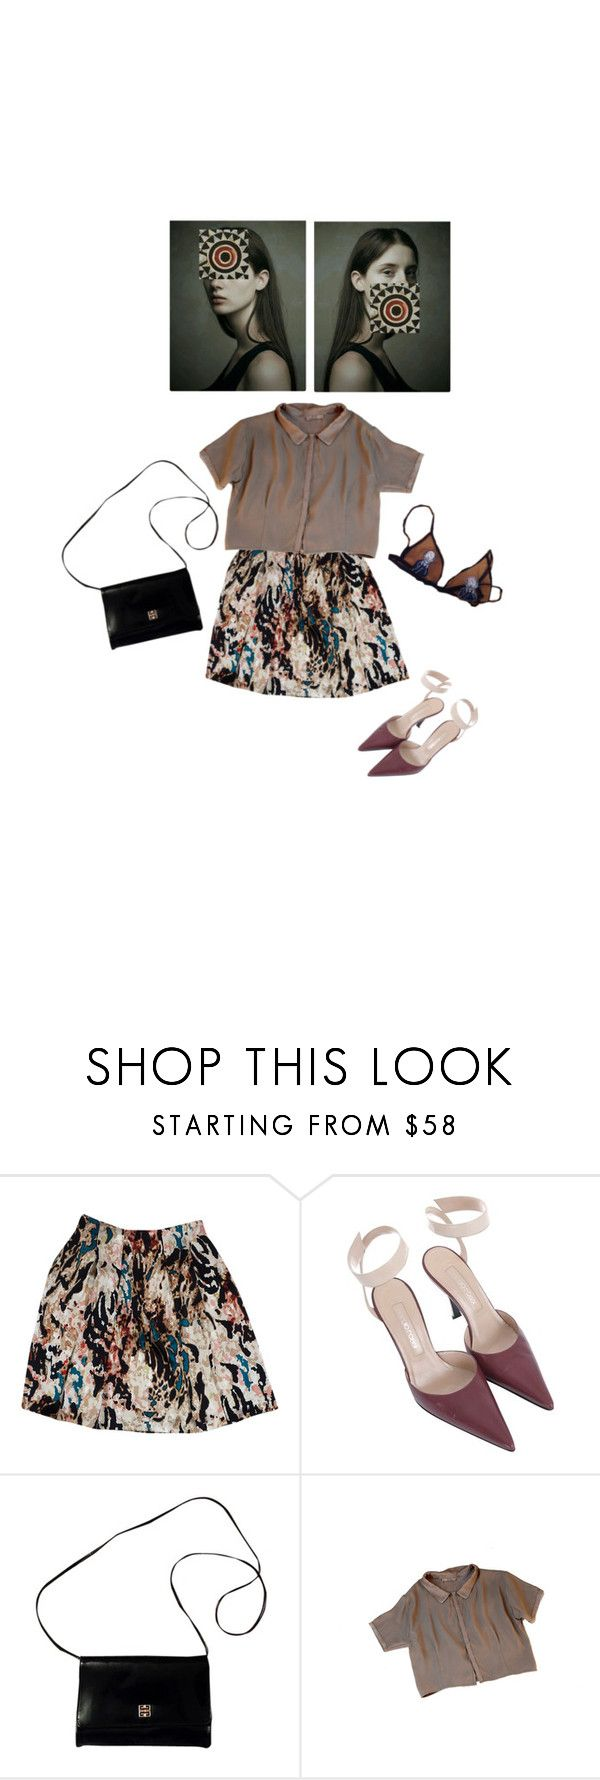 """""""62) looking for signs of life"""" by theotherjoanne ❤ liked on Polyvore featuring Rachel Roy, Sergio Rossi, Givenchy, NOVICA, vintage, SergioRossi, bralette and CollaredTop"""